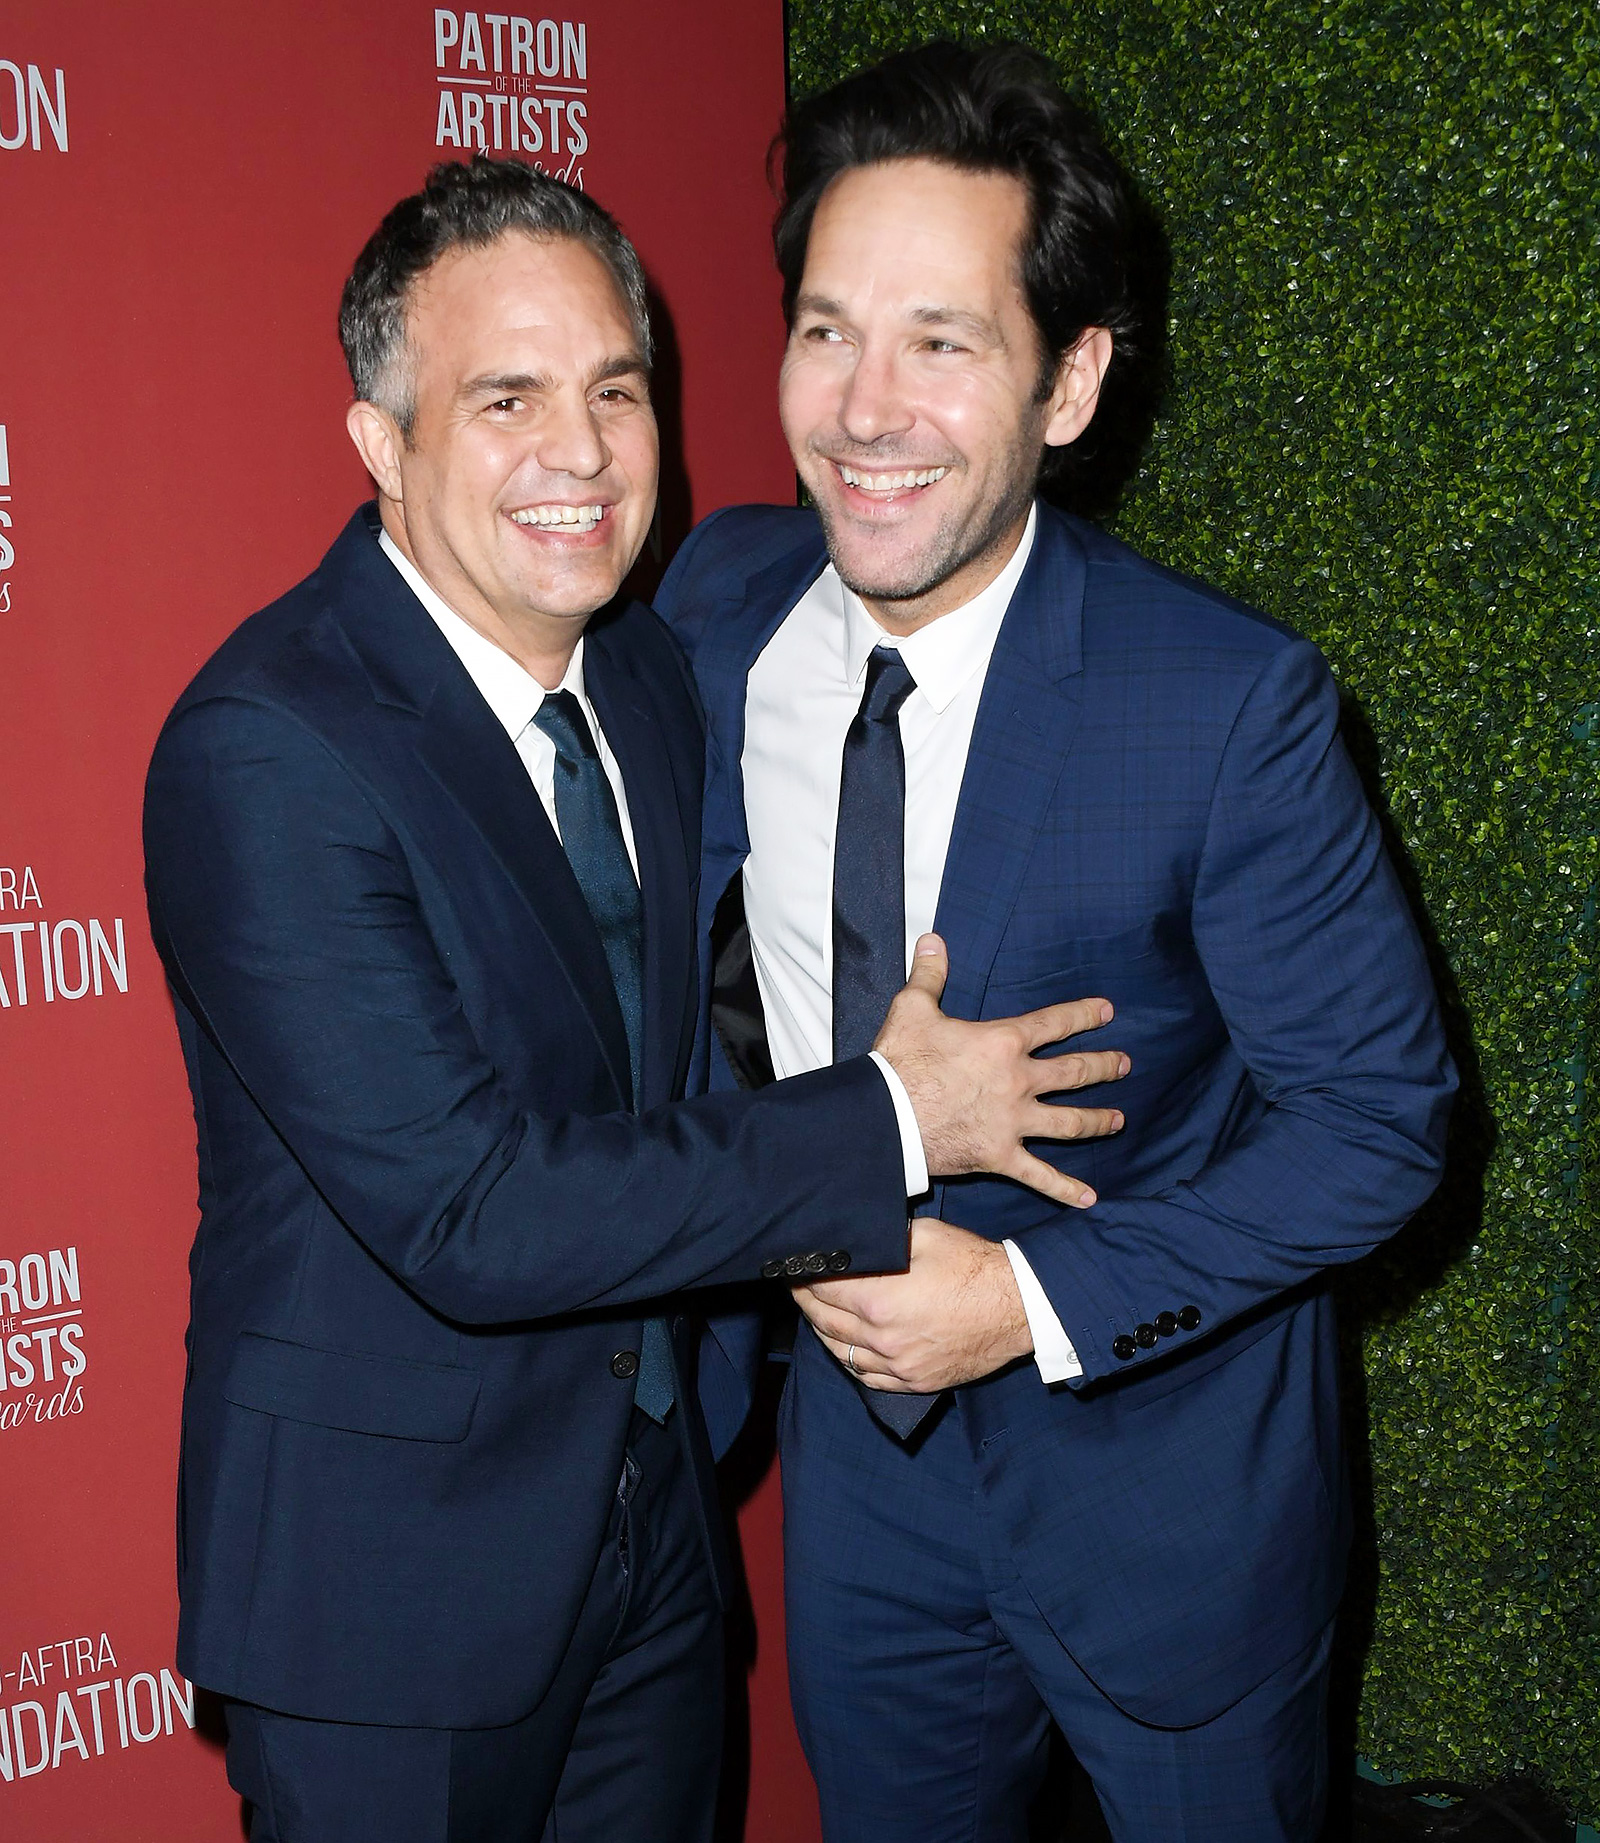 Mark Ruffalo and Paul Rudd attend SAG-AFTRA Foundation's 4th Annual Patron of the Artists Awards at Wallis Annenberg Center for the Performing Arts on November 07, 2019 in Beverly Hills, California